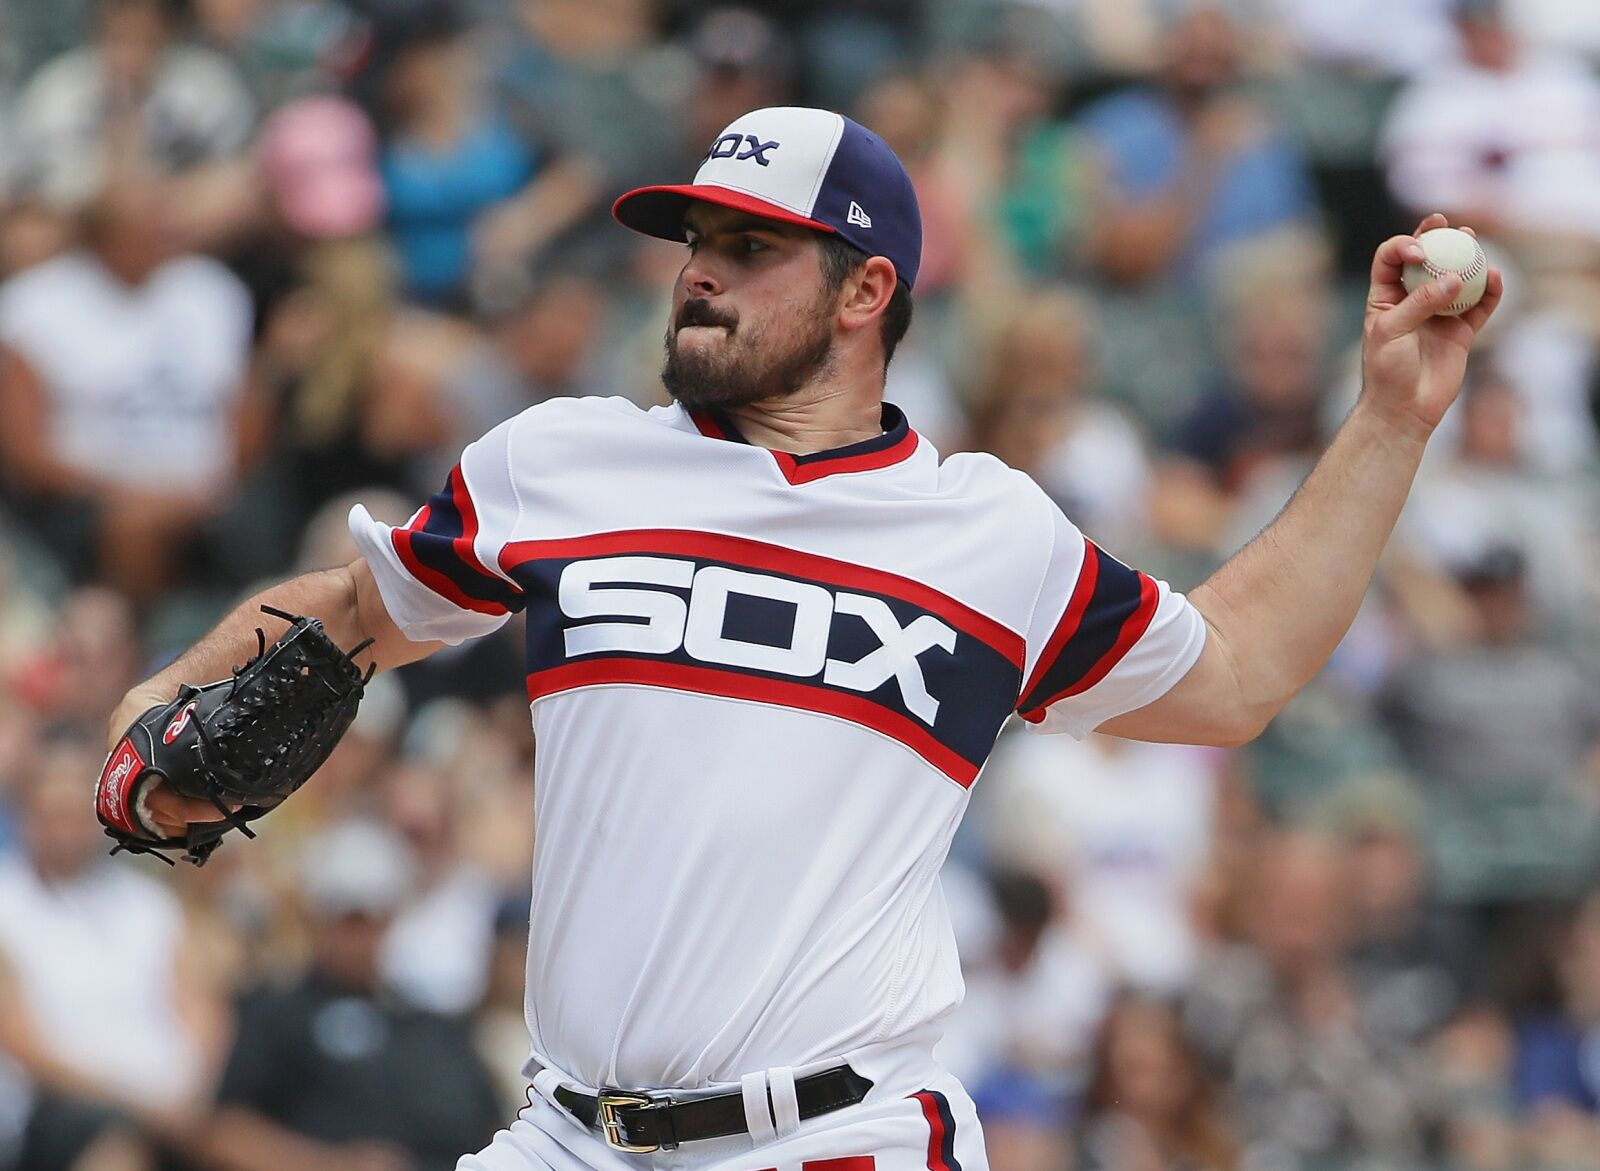 White Sox: Carlos Rodon Begins Important 2019 As Opening Day Starter